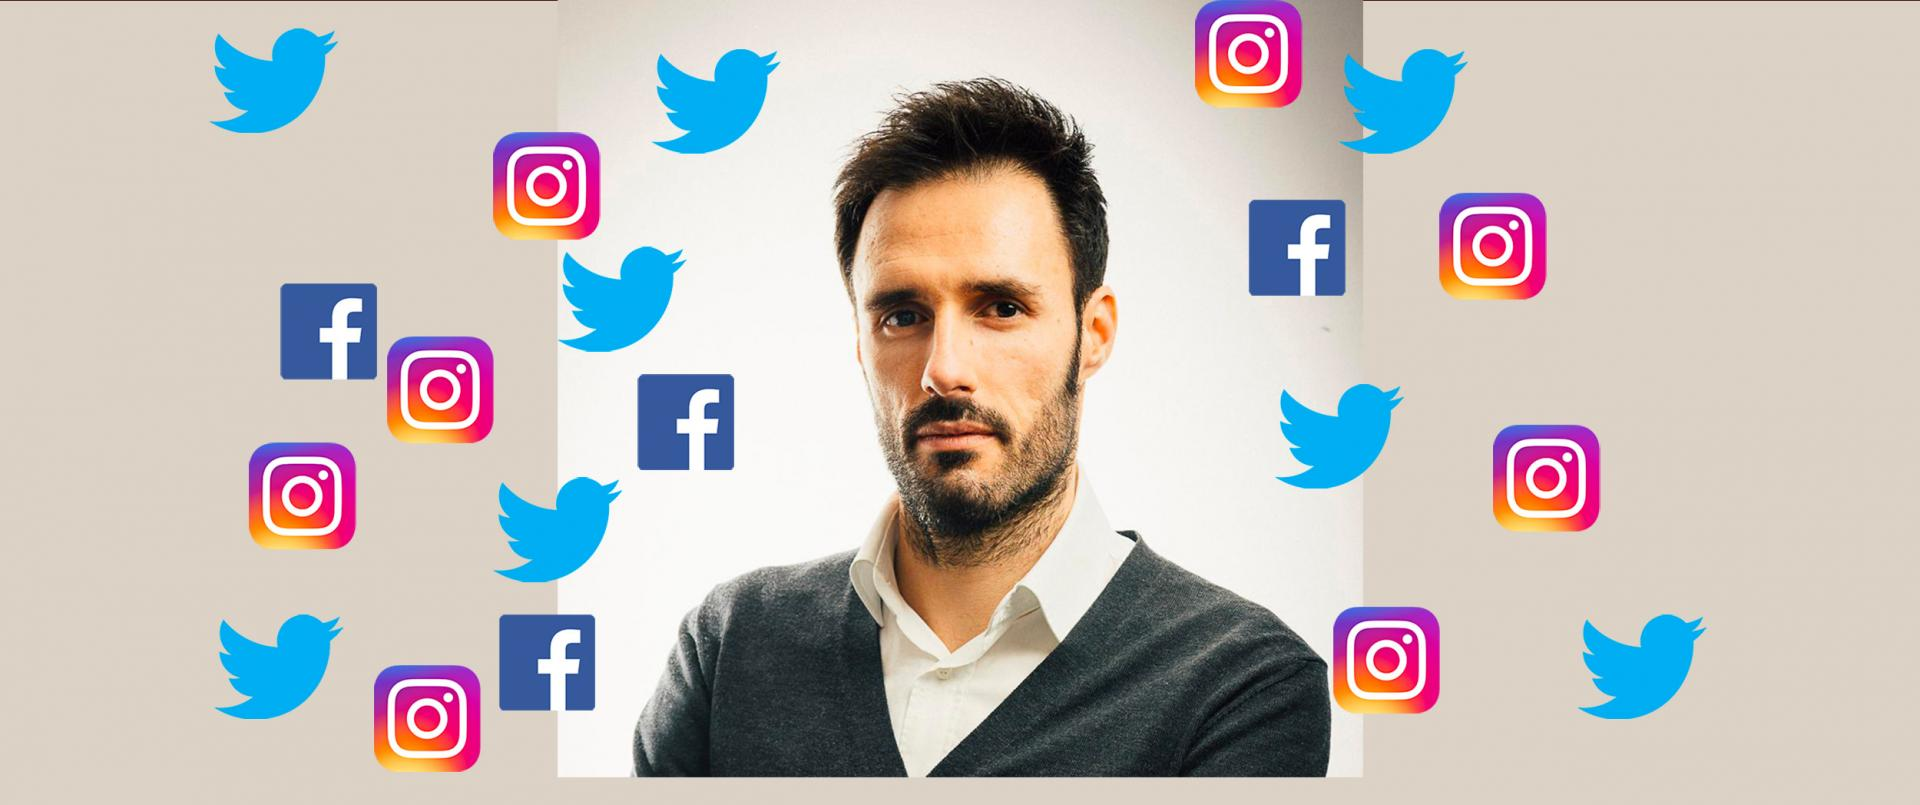 Matteo Pogliani l'intervista: come funziona l'influencer marketing